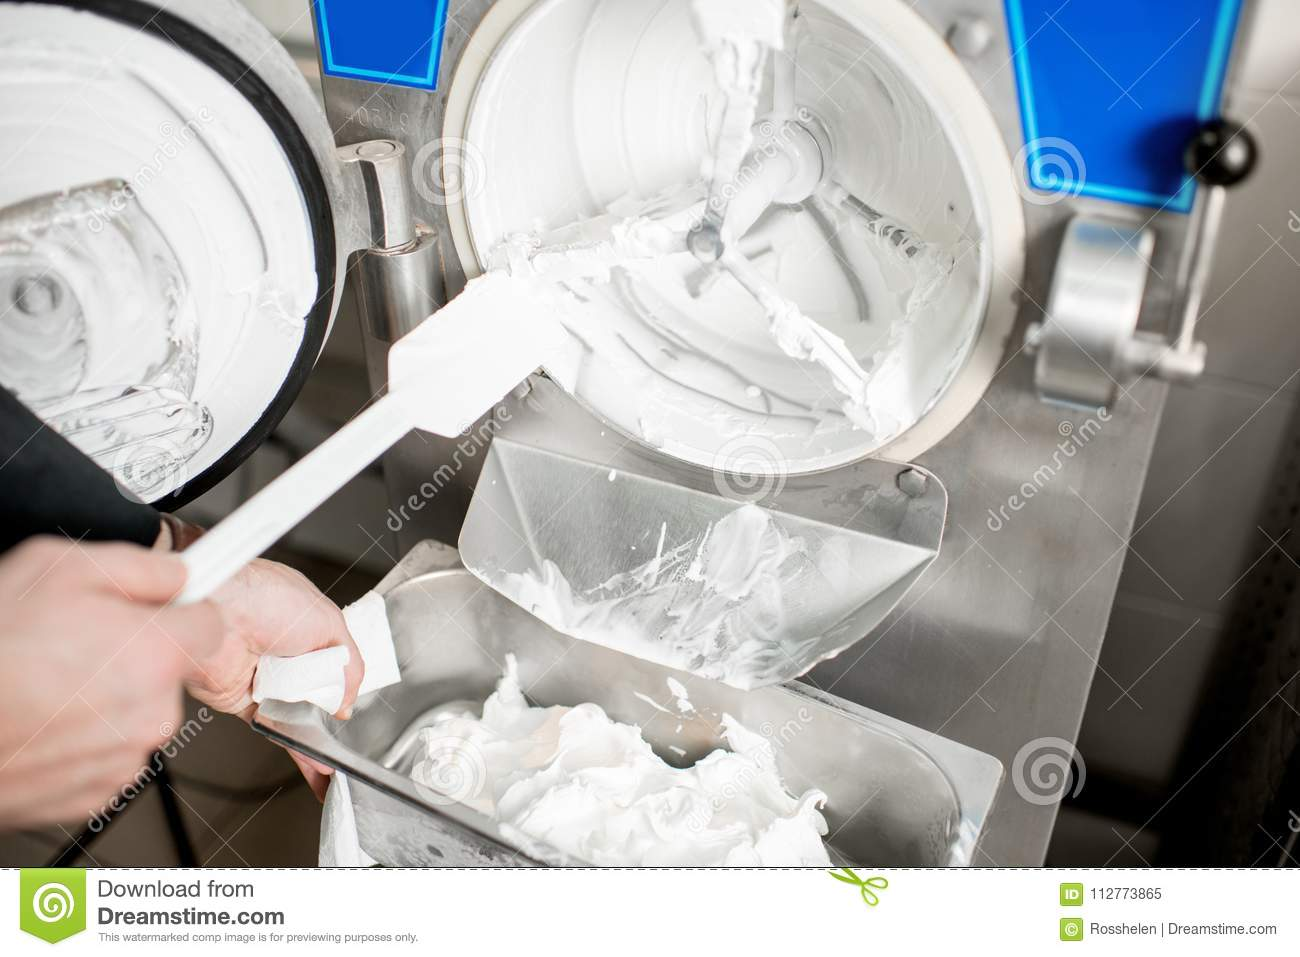 Cleaning Ice Cream Maker Machine Stock Image Image Of Food Metal 112773865